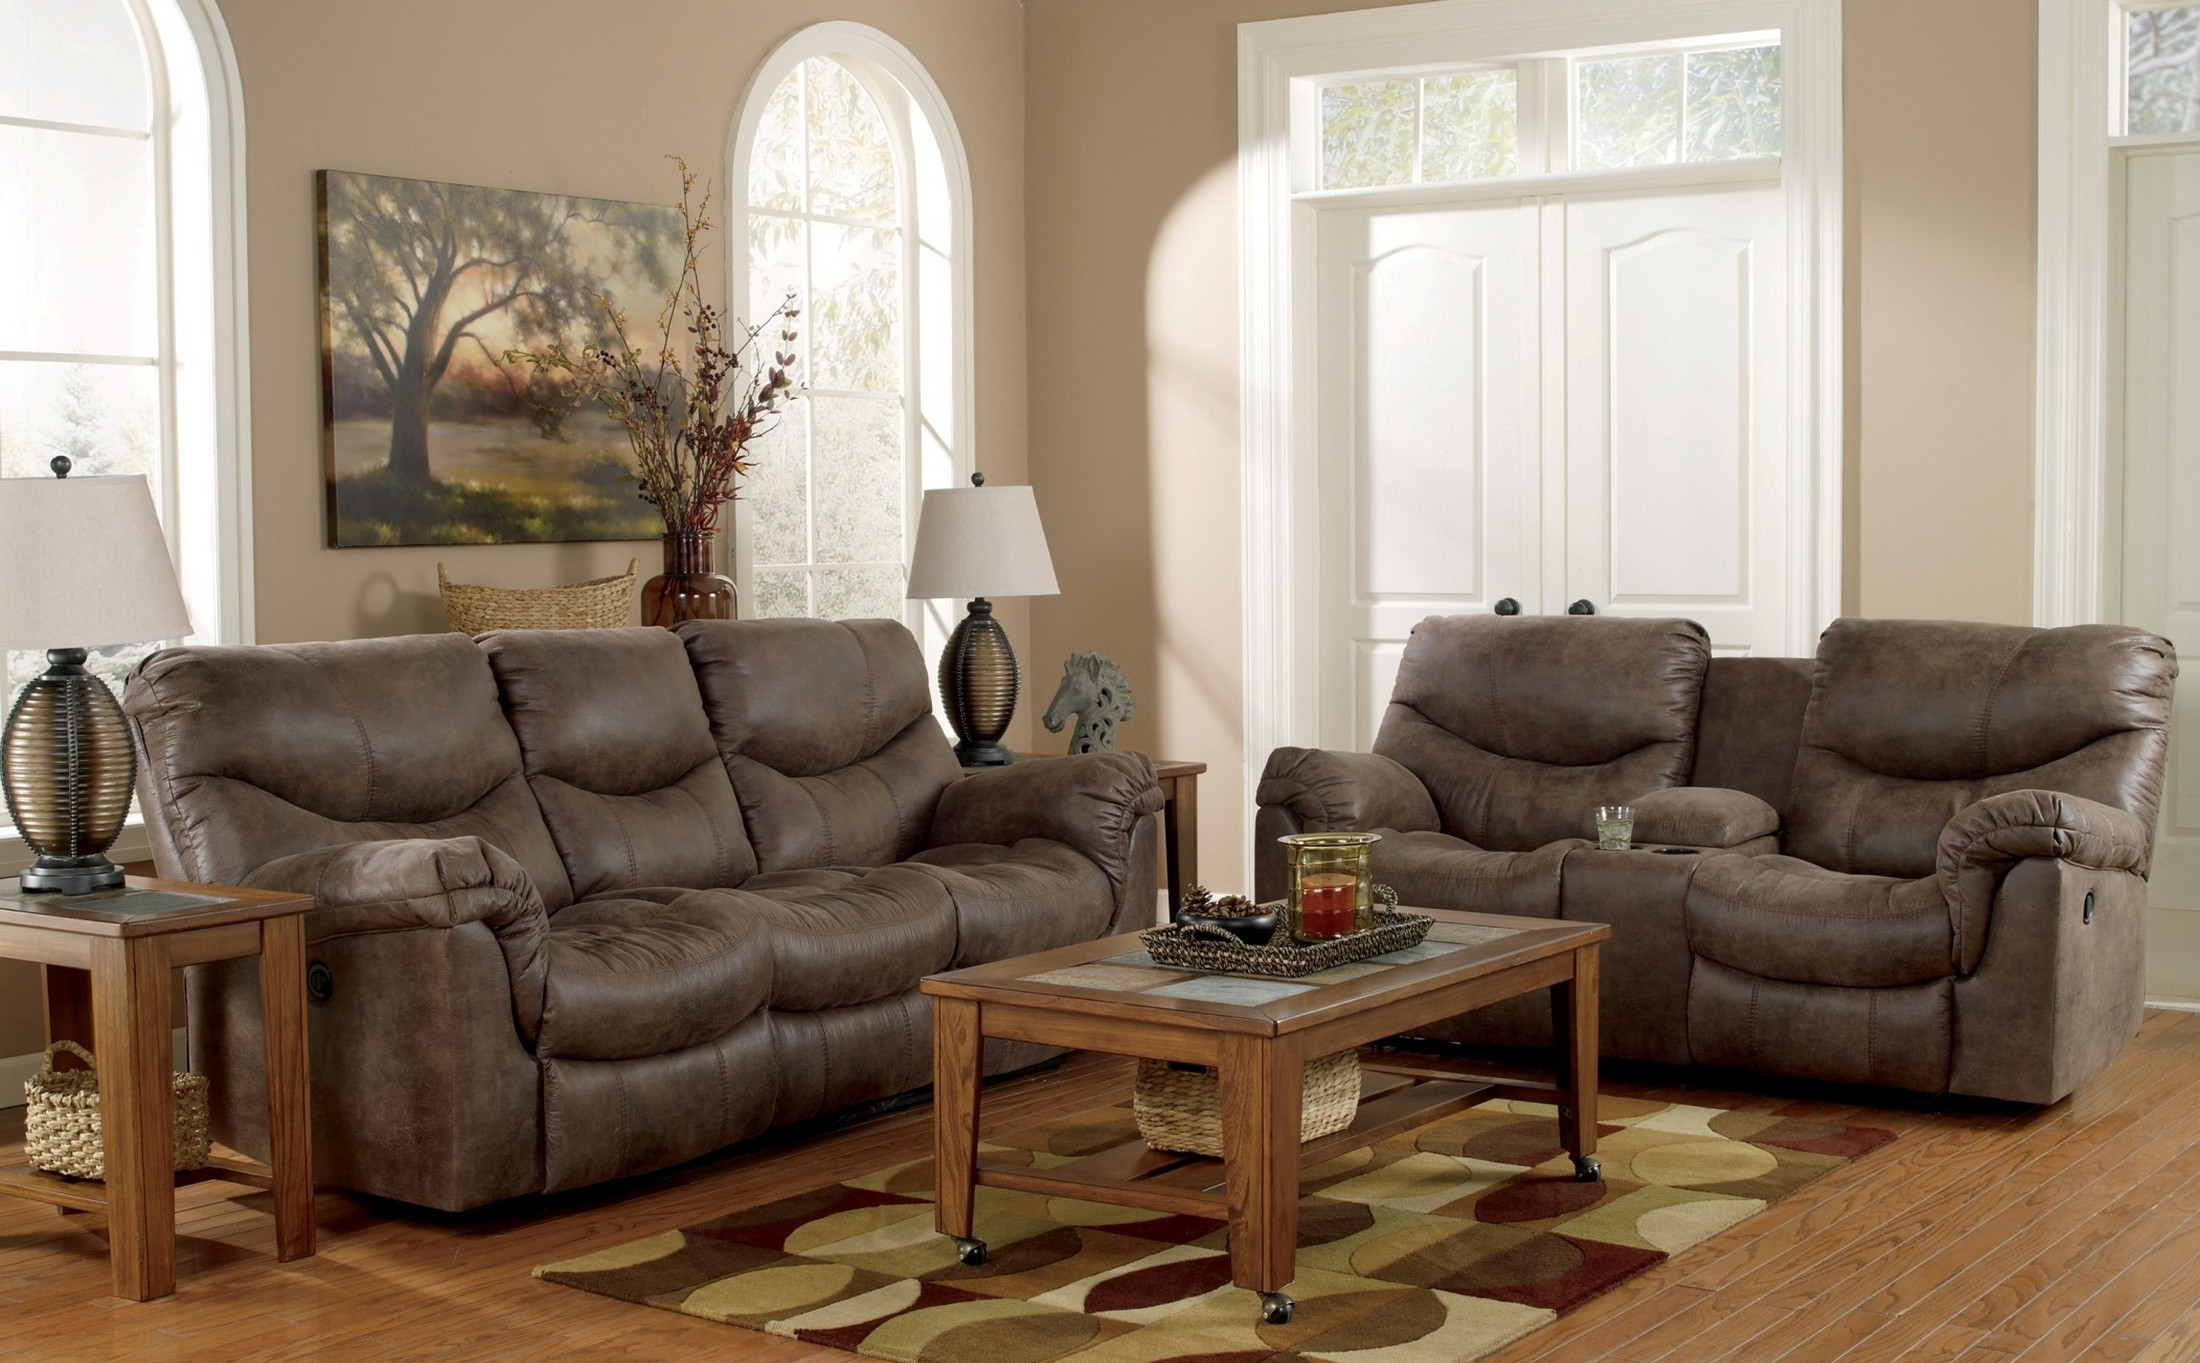 Merveilleux Alzena Reclining Living Room Set. Old Vs New   Buying Furniture Online.  2295813. 1930399